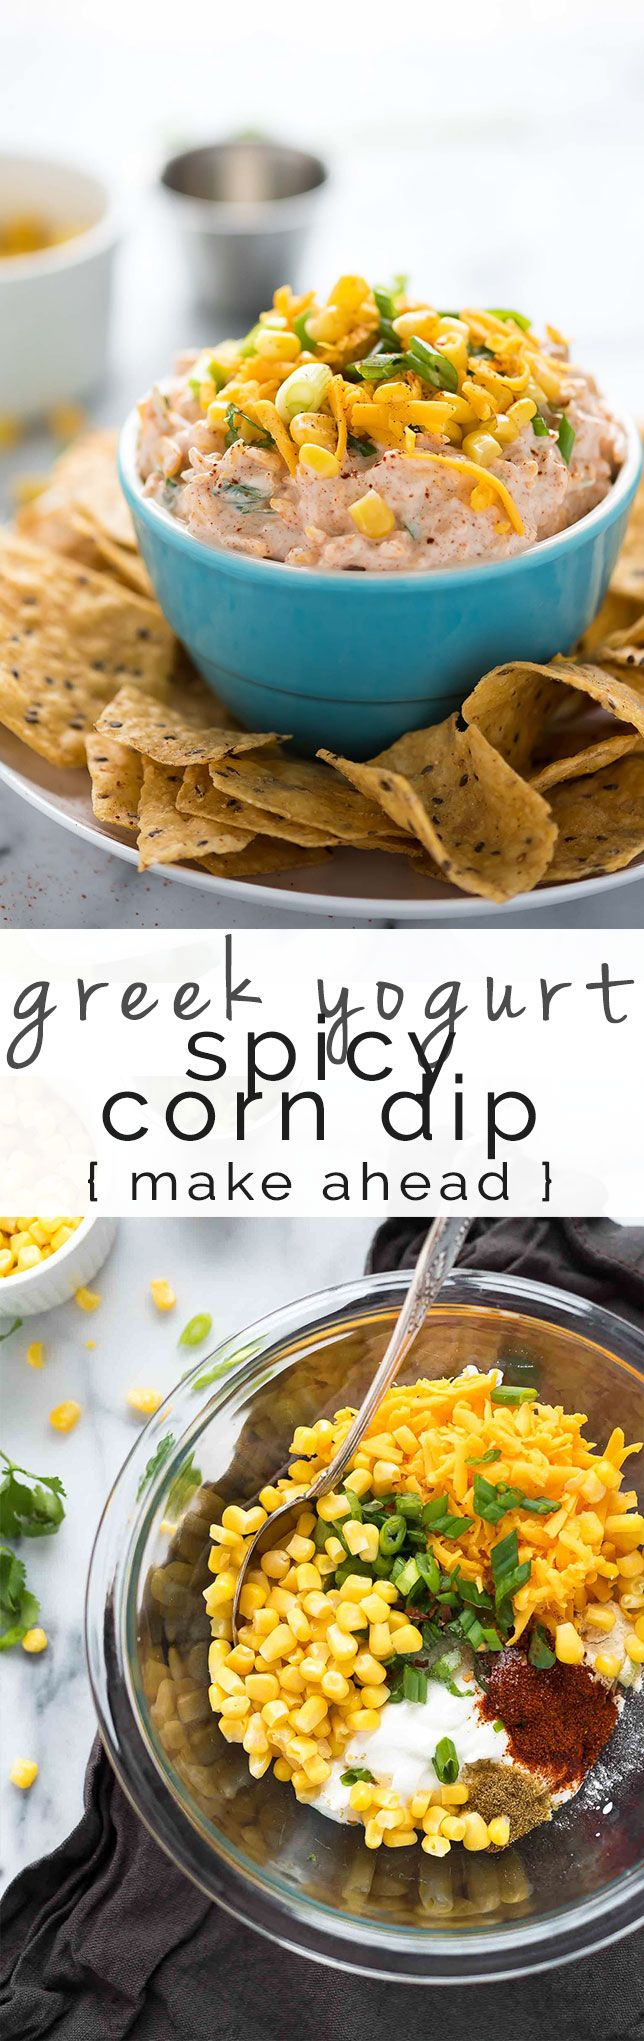 Spicy corn dip, cold, hot, recipe, easy, parties, tortilla chips, super bowl, greek yogurt, snacks, healthy, gluten free